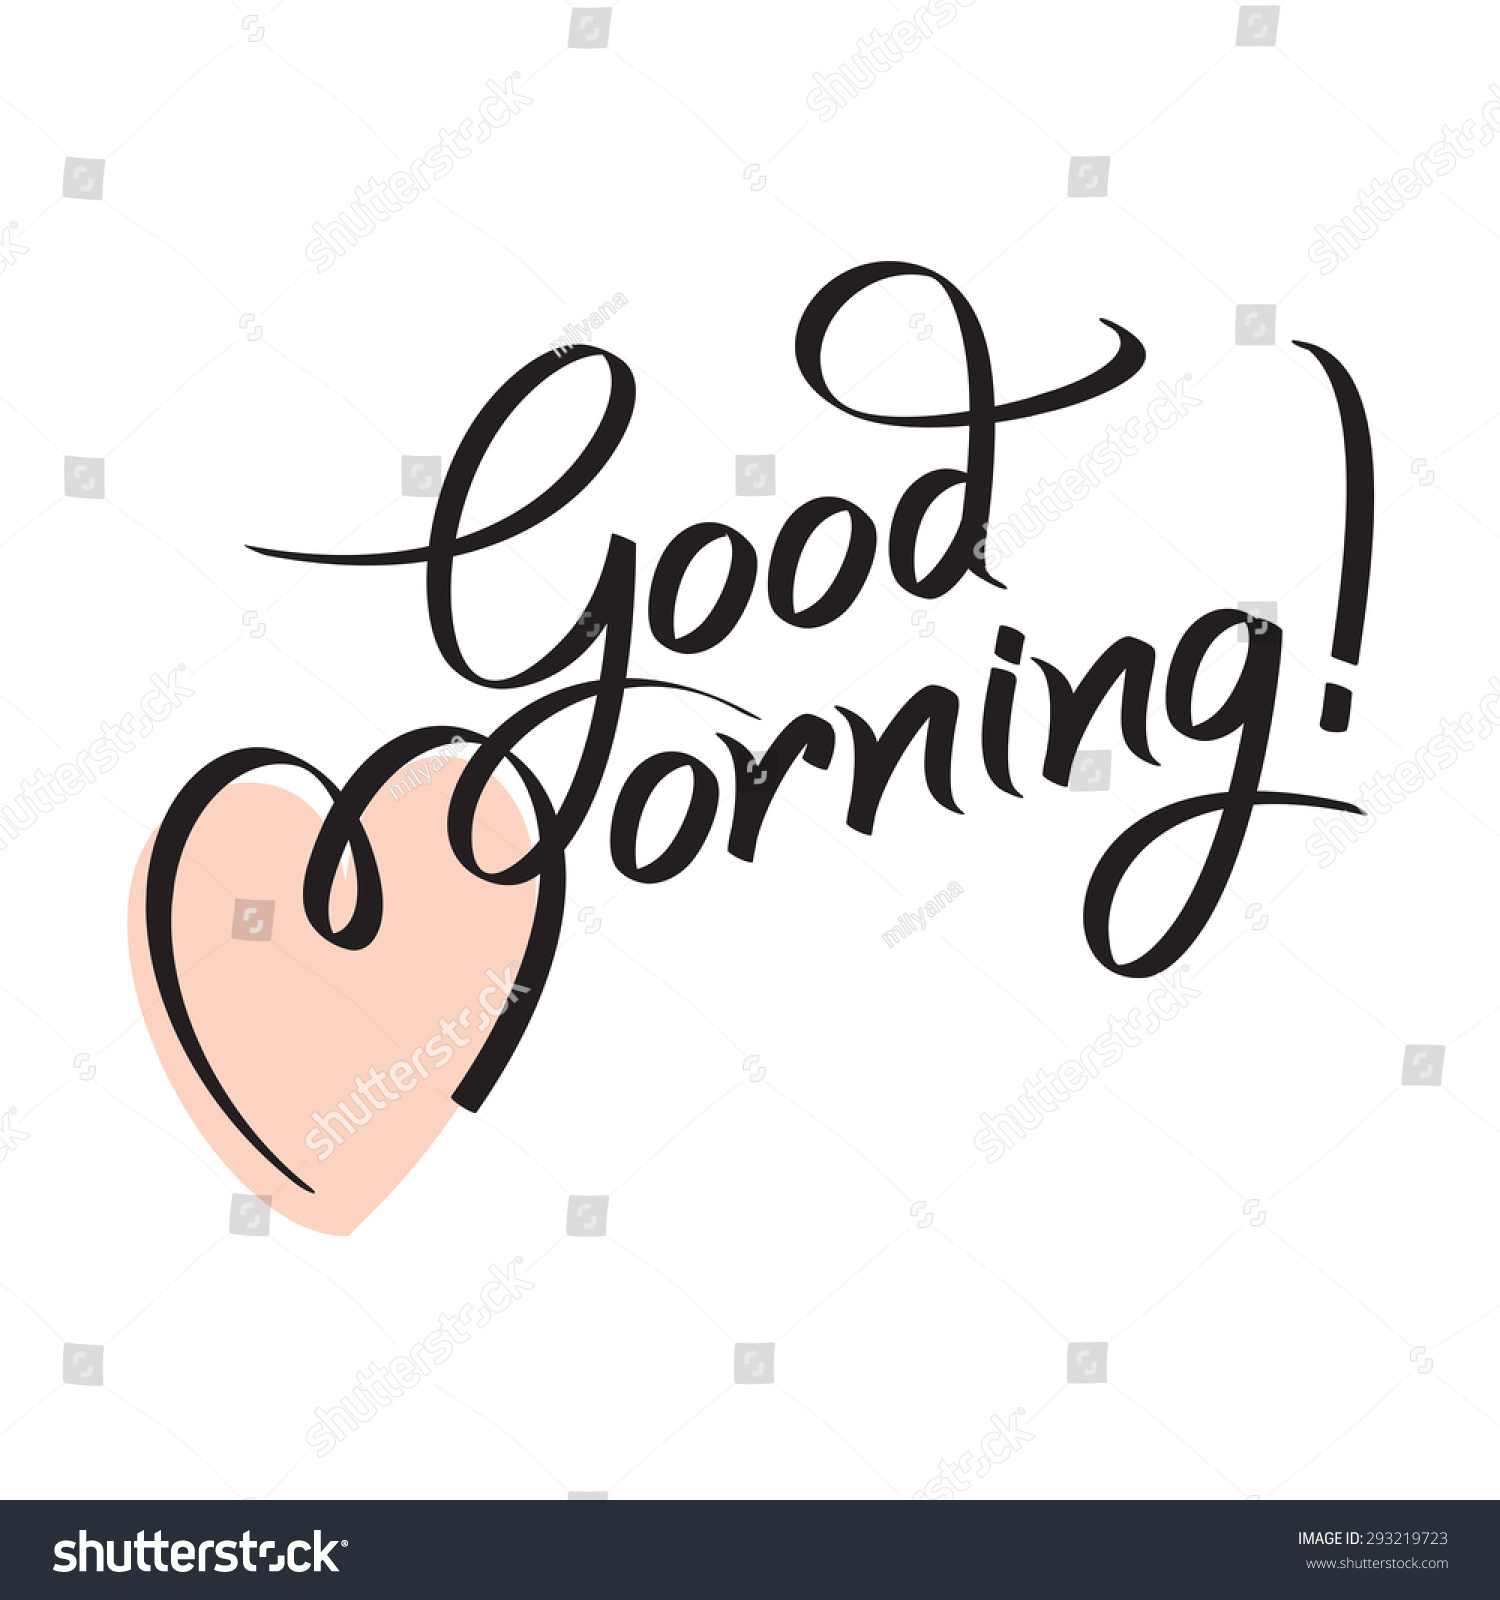 good morning hand lettering text handmade stock vector 2018 rh shutterstock com good morning logo gif good morning logo png